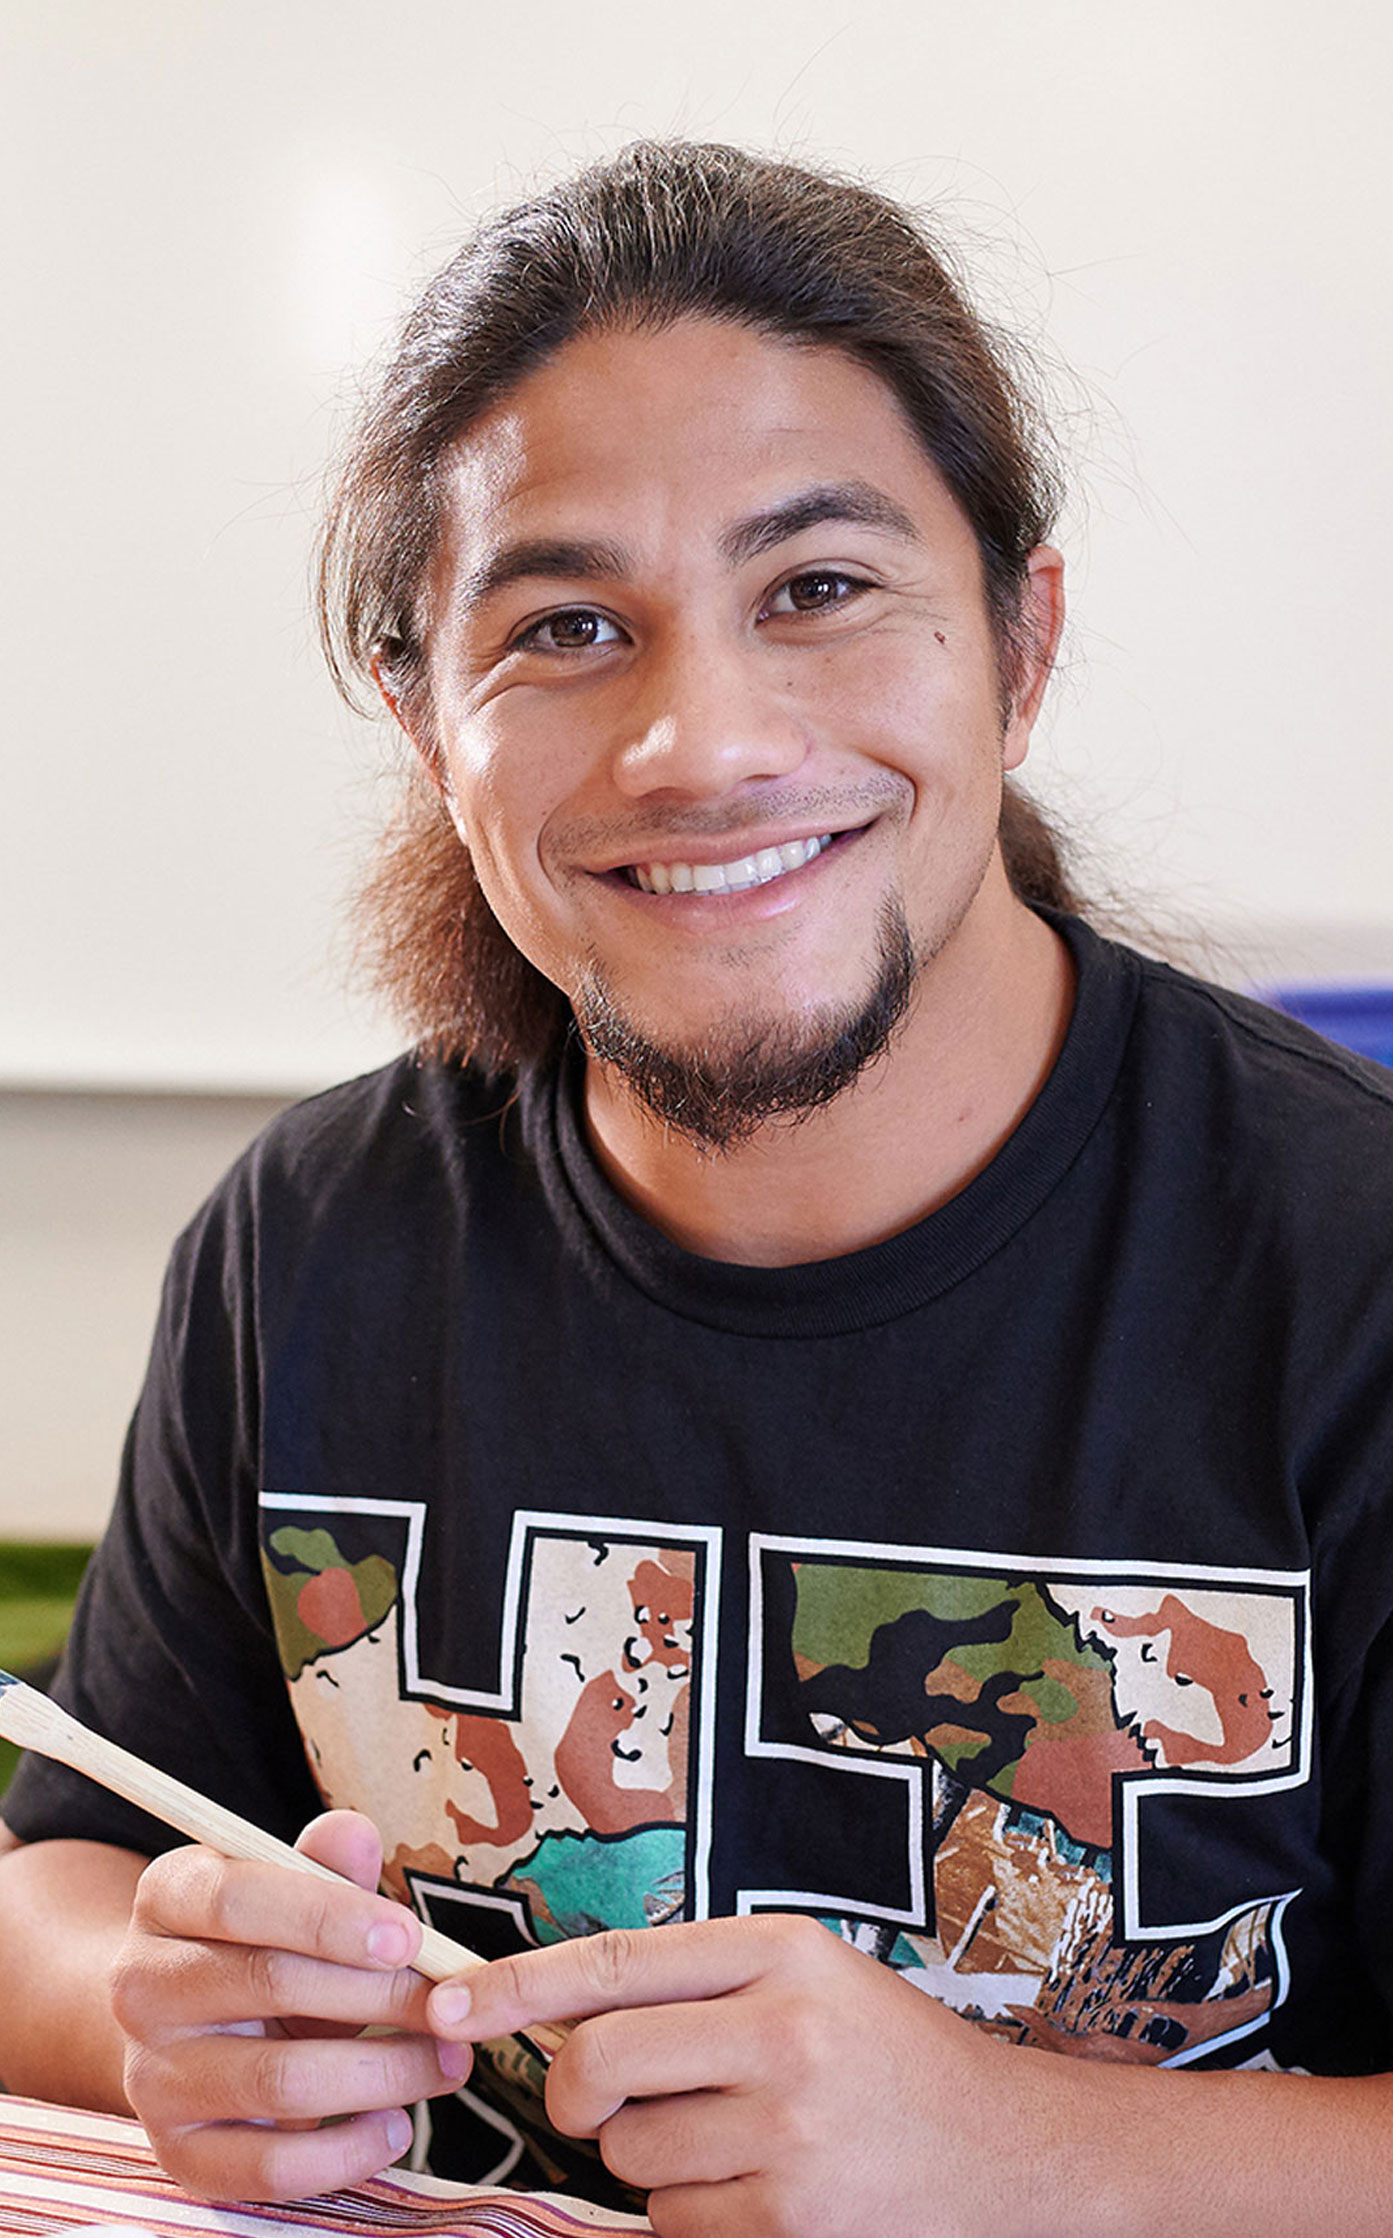 Close-up Of A Student Smiling In A Classroom With A Black T-shirt.